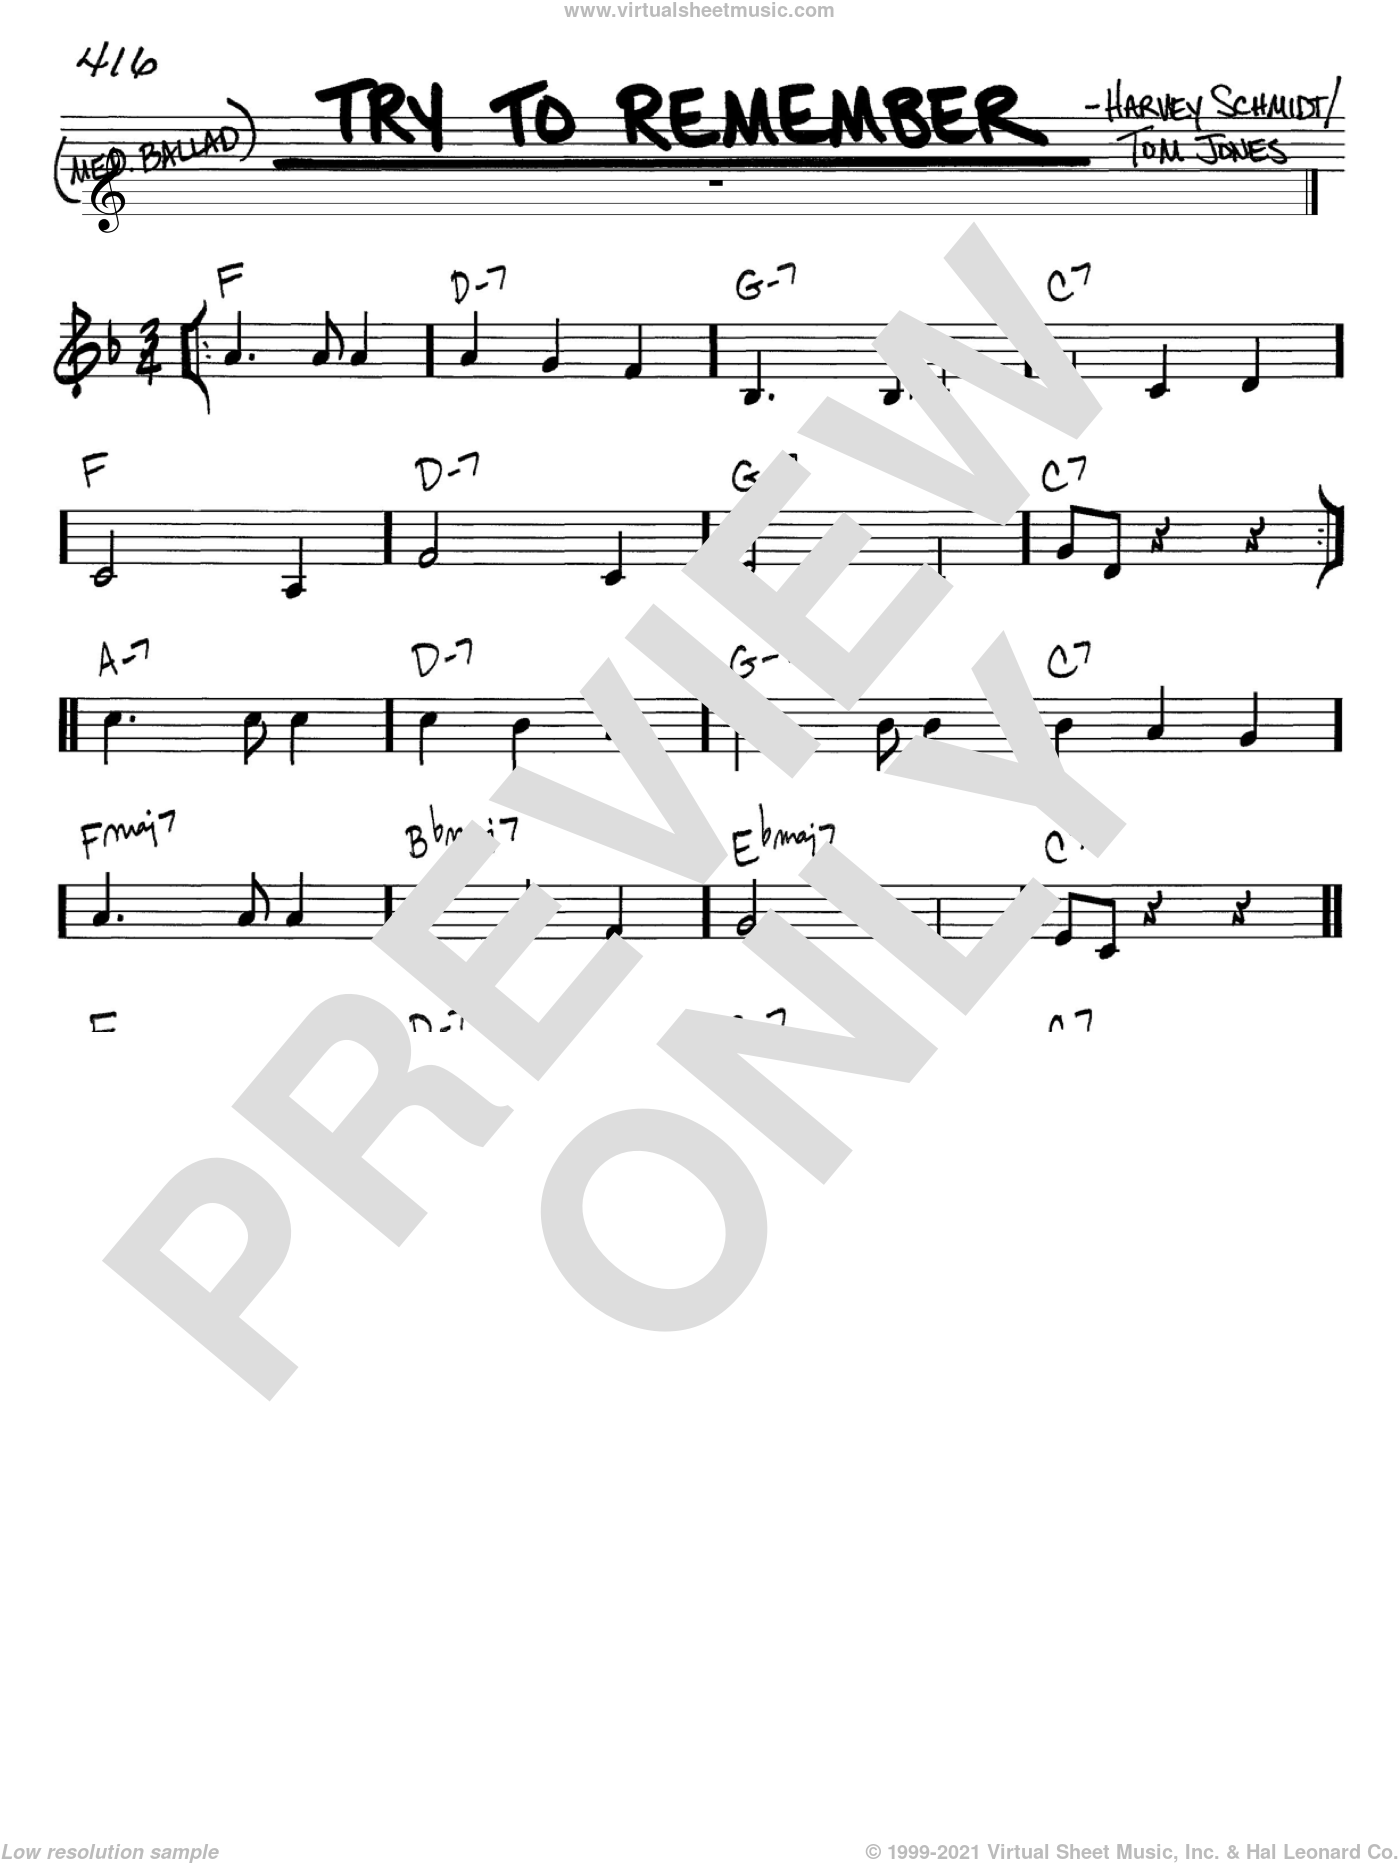 Try To Remember sheet music for voice and other instruments (C) by Tom Jones